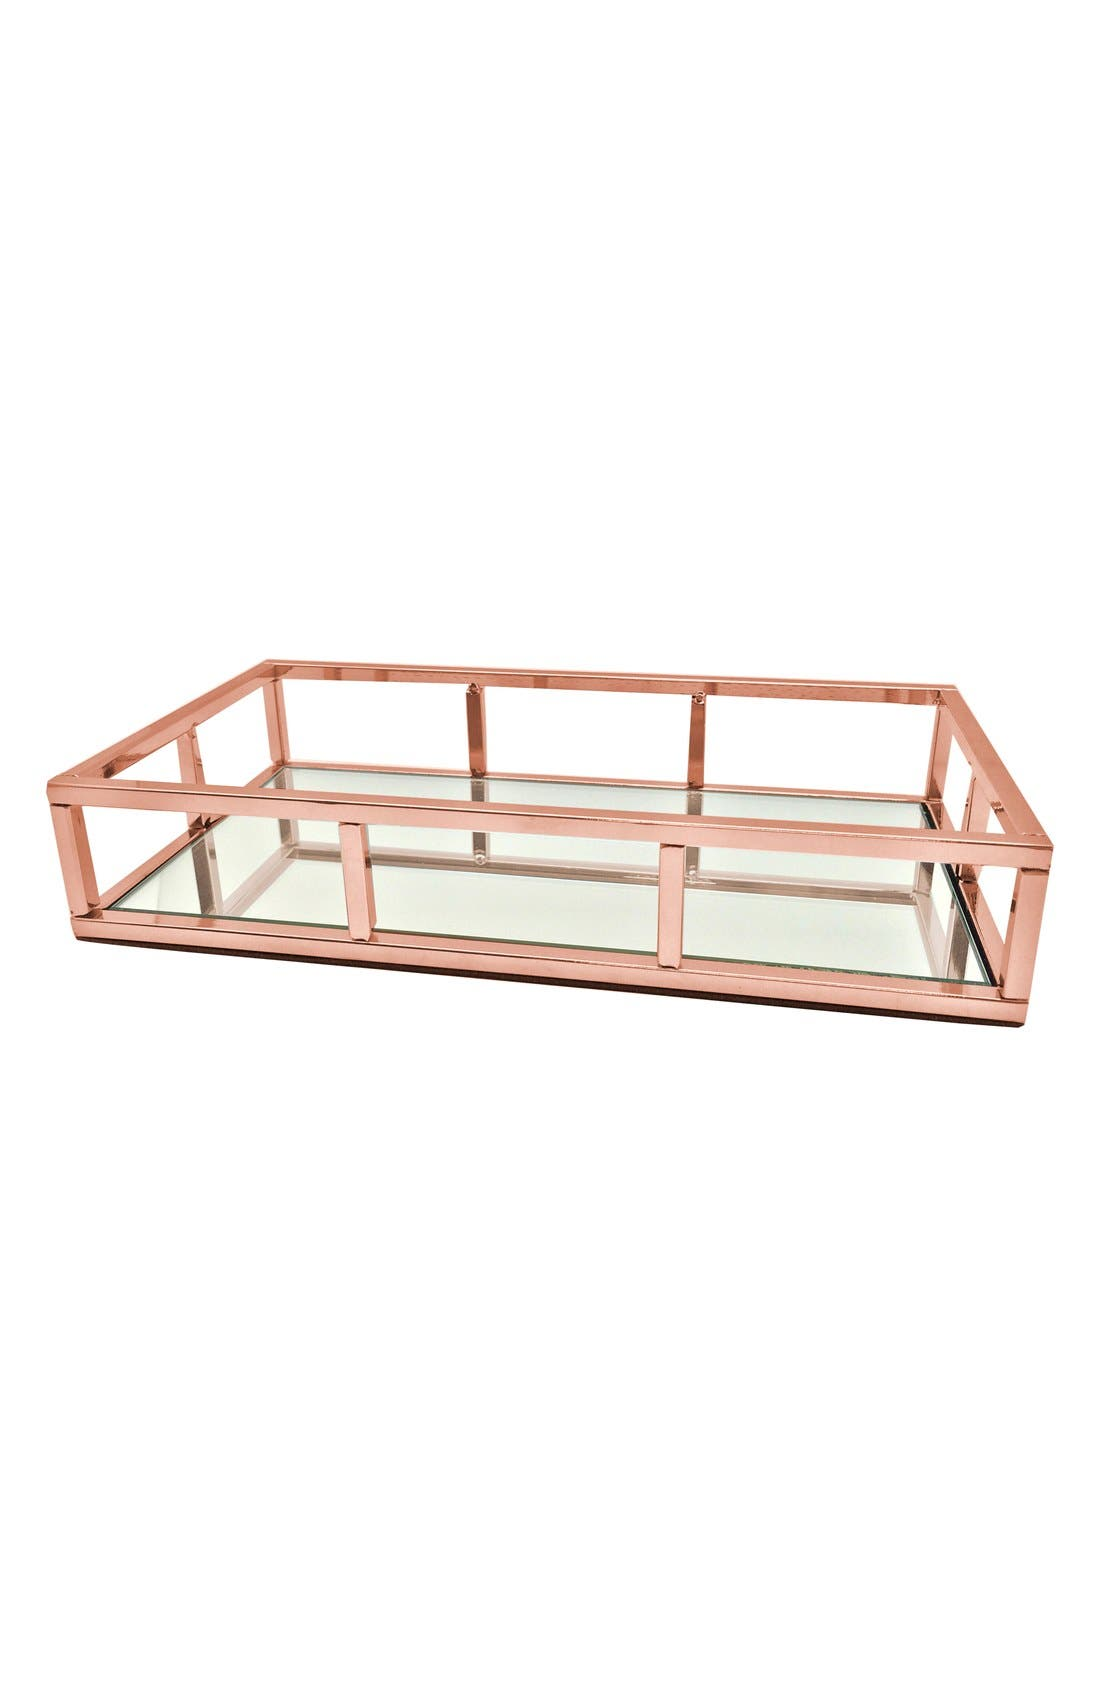 Danielle Creations Rose Gold Mirror Tray (Nordstrom Exclusive)